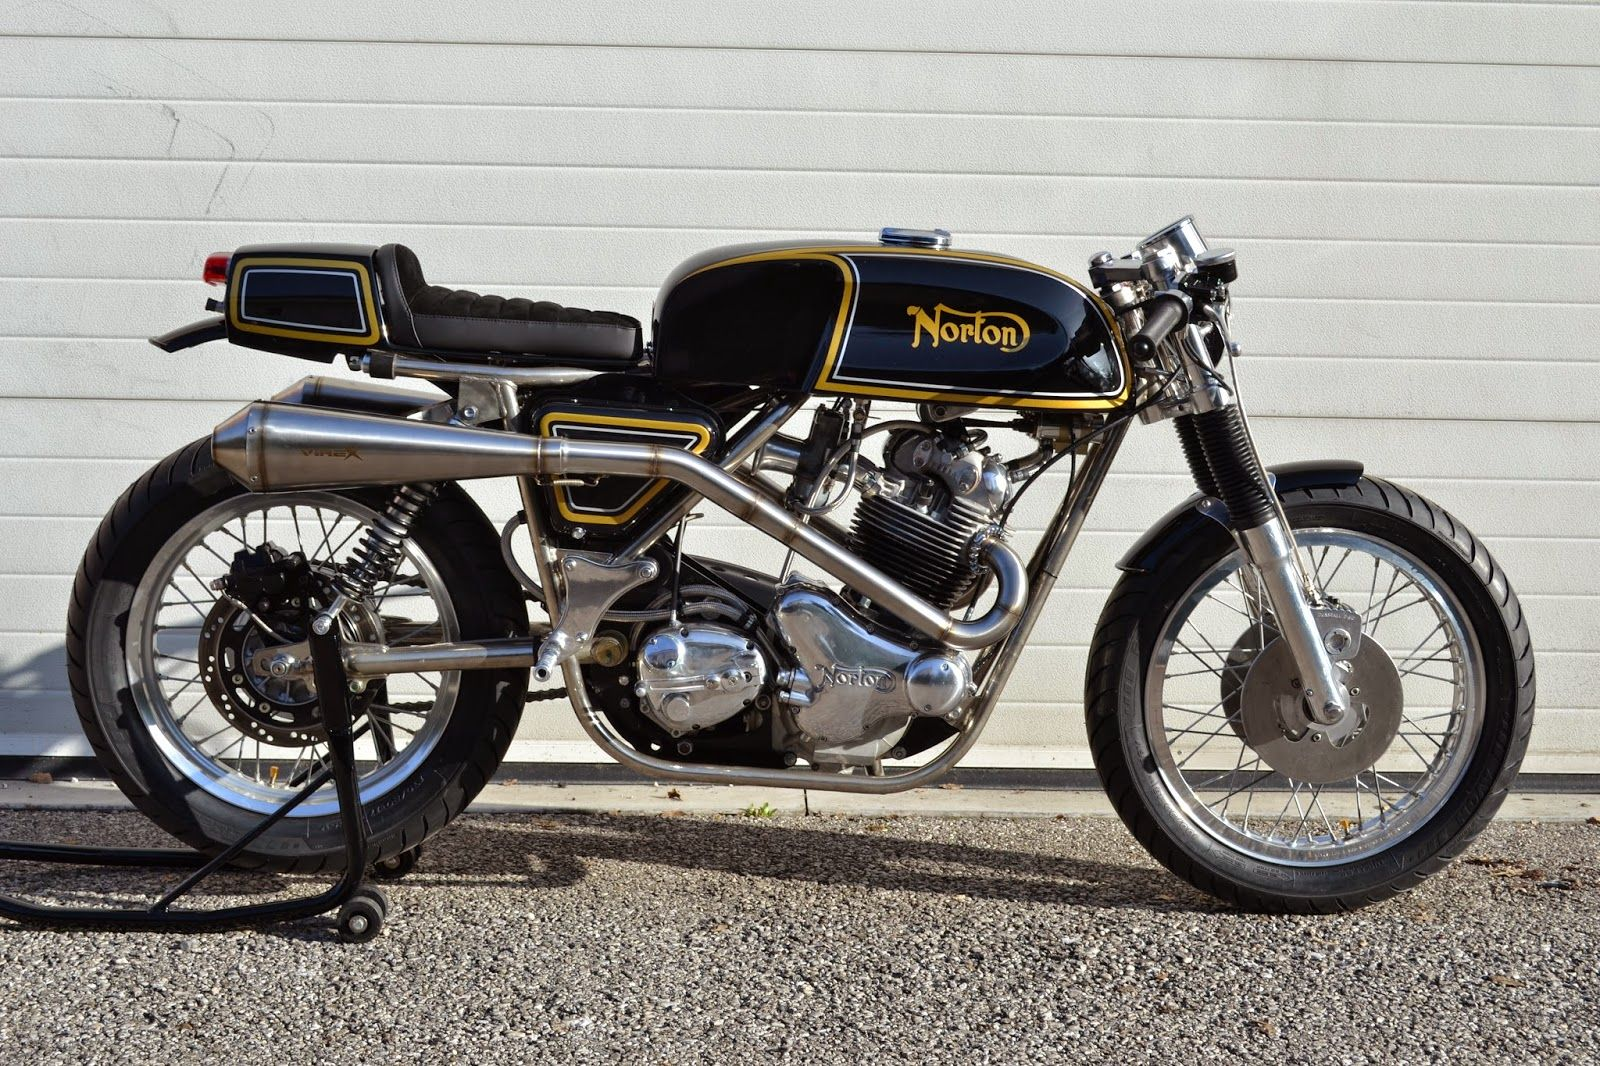 another pic of the Norton Cafe Racer